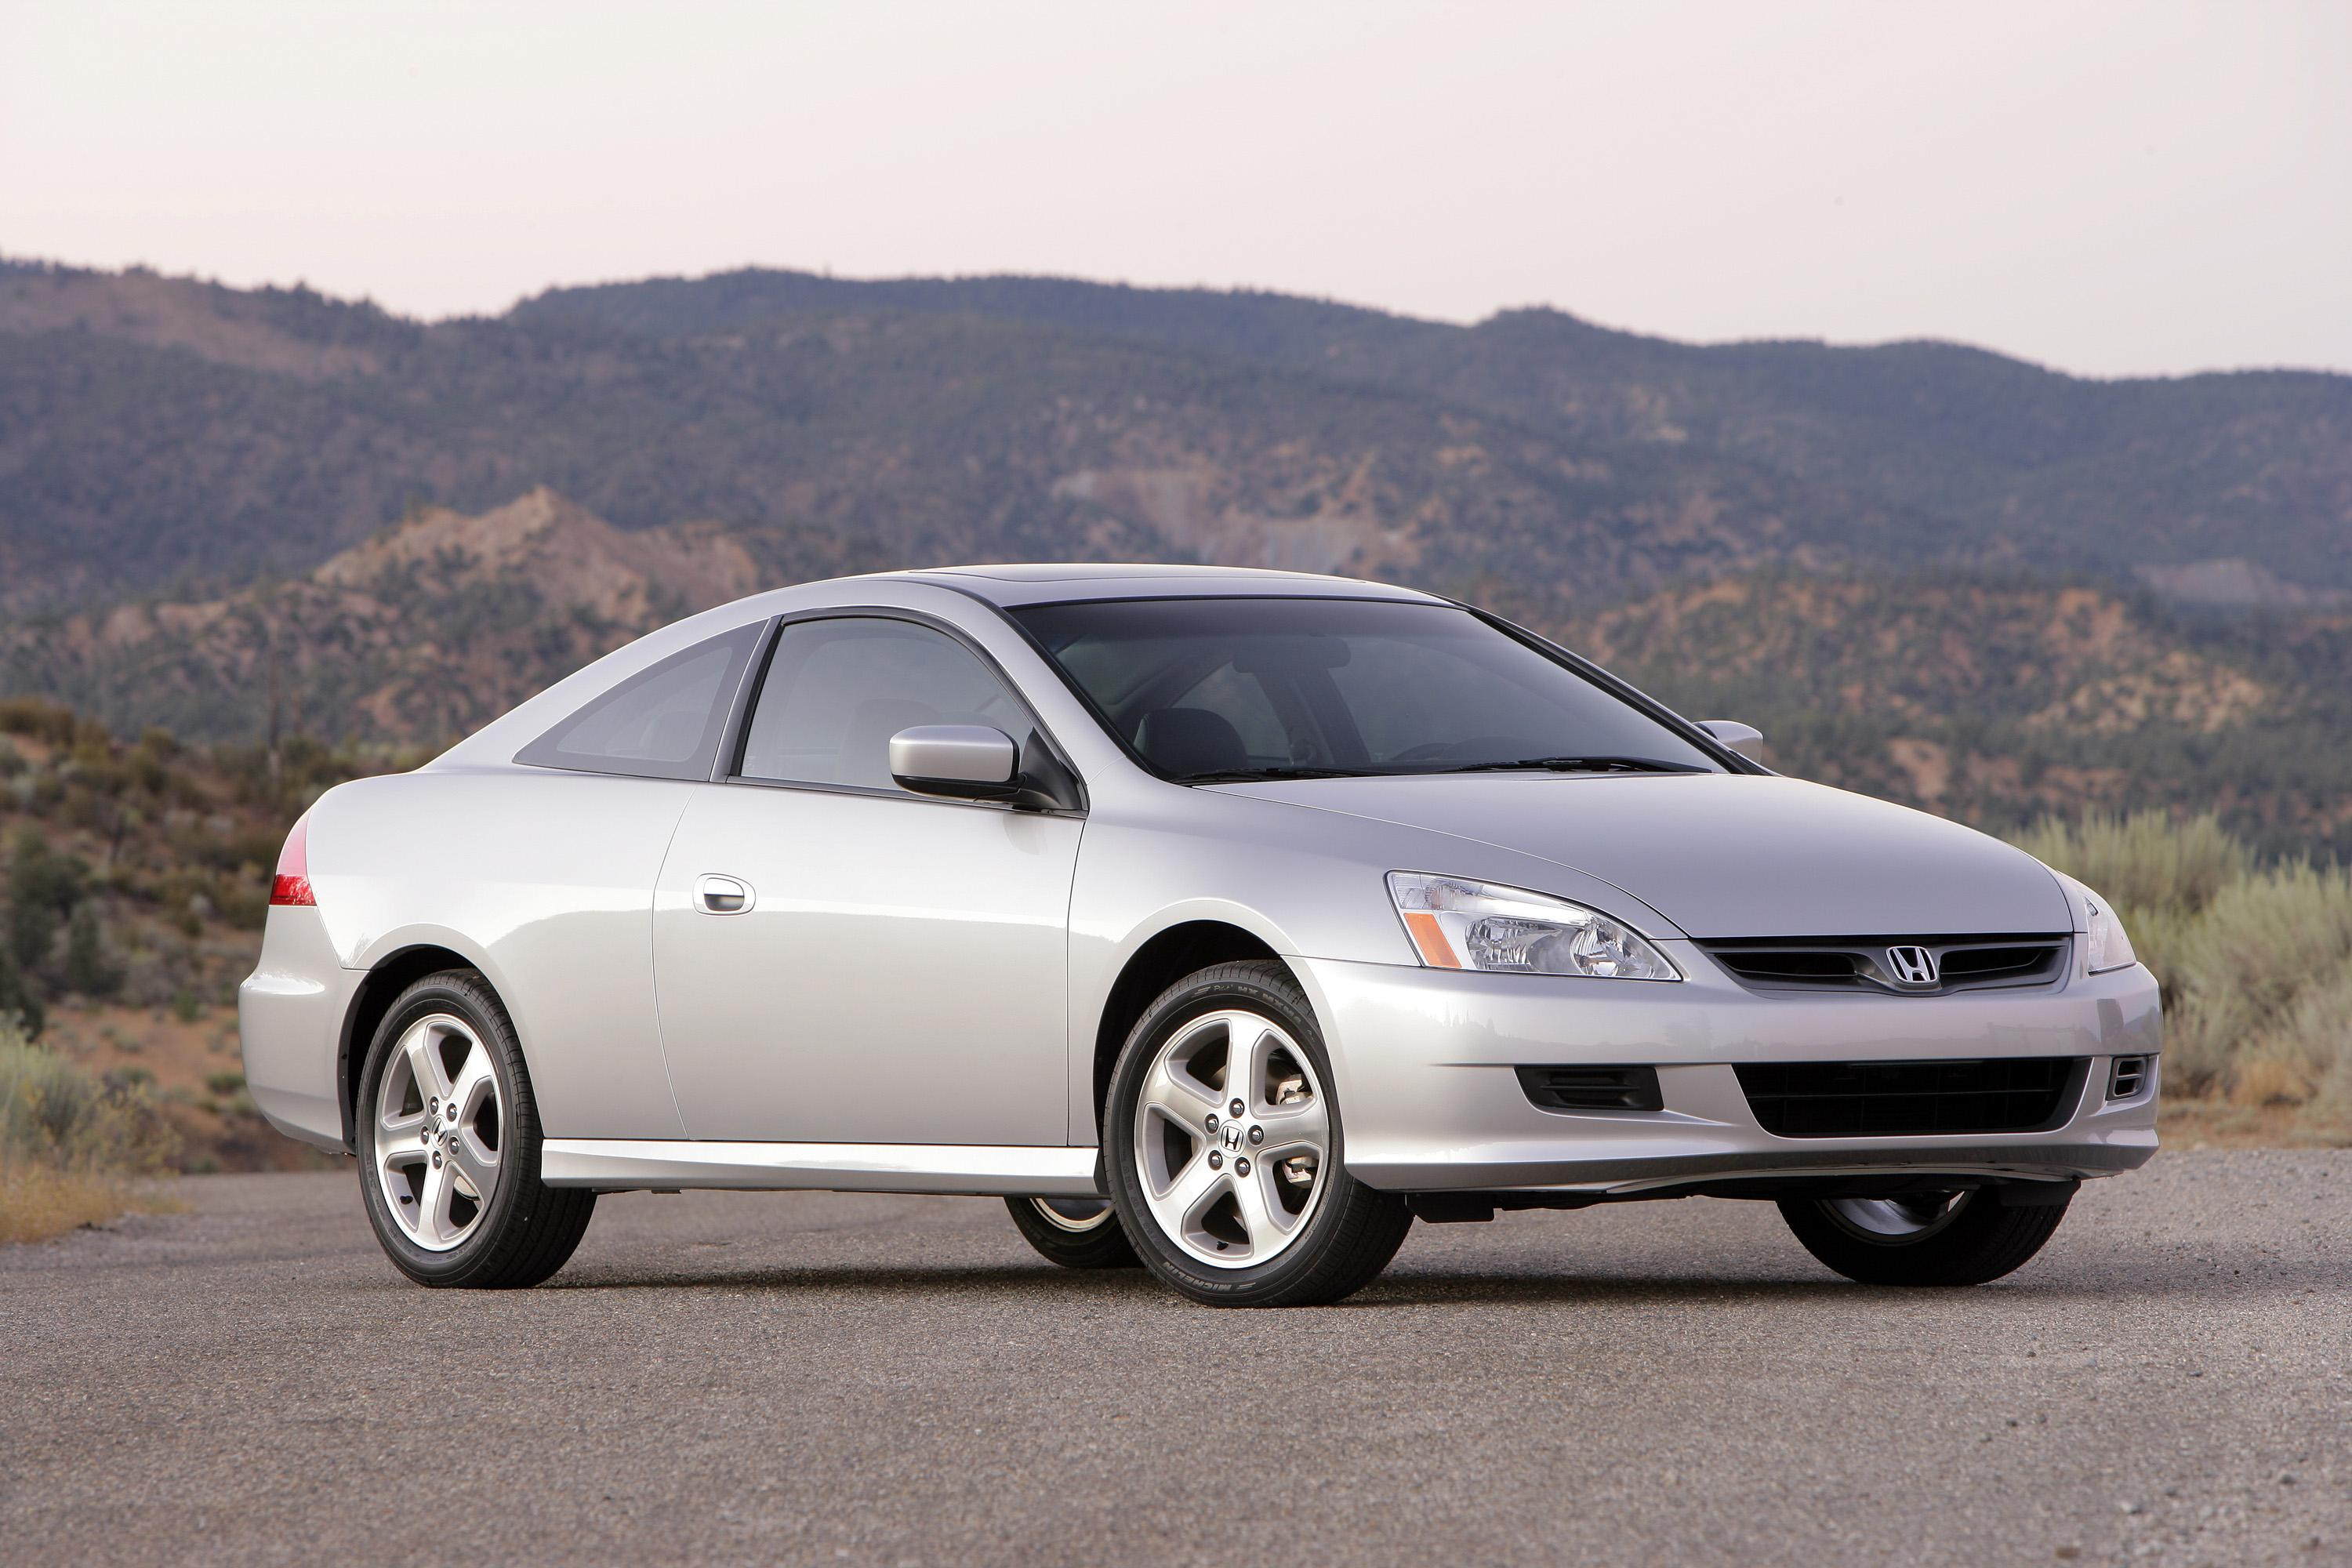 2006 Honda Accord Coupe | Top Speed